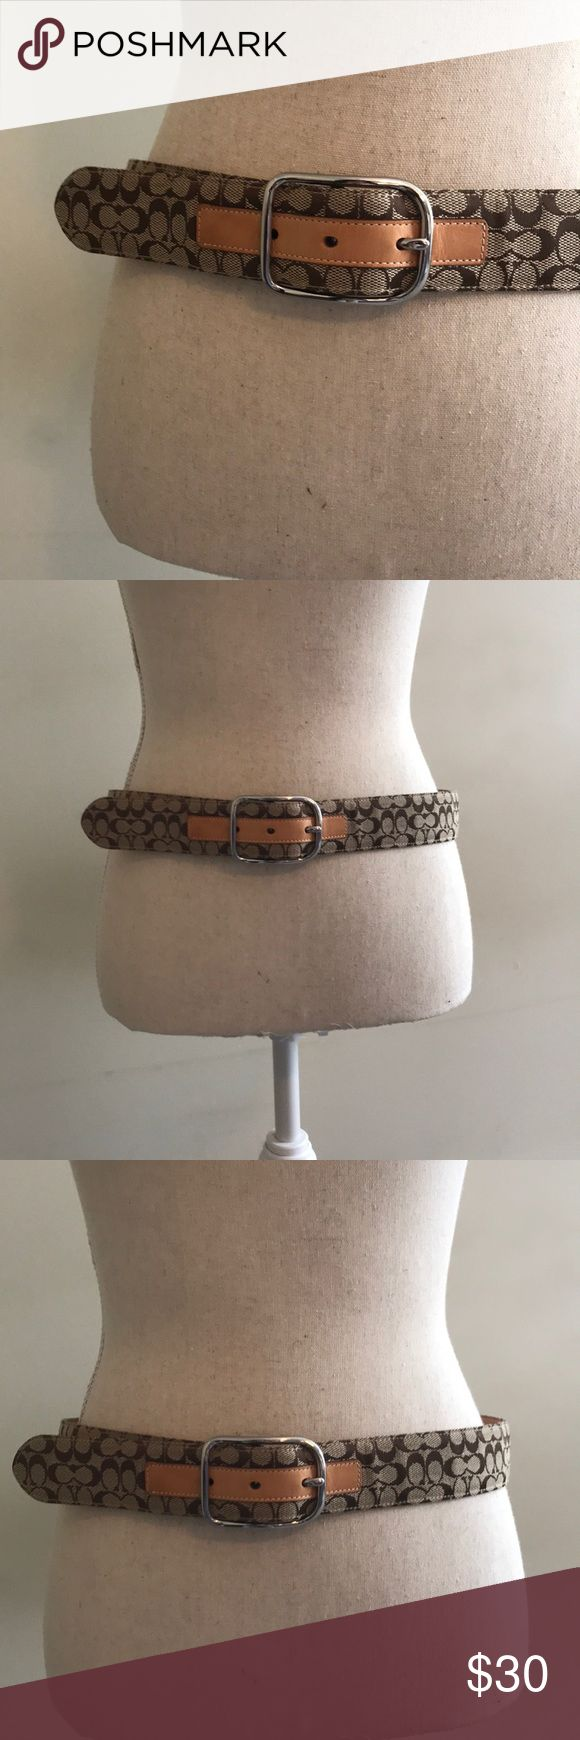 Brown and tan leather Coach belt Brown and tan leather Coach belt. 3 notches  Excellent condition. Genuine leather and solid brass buckle , handcrafted in Italy Coach Accessories Belts